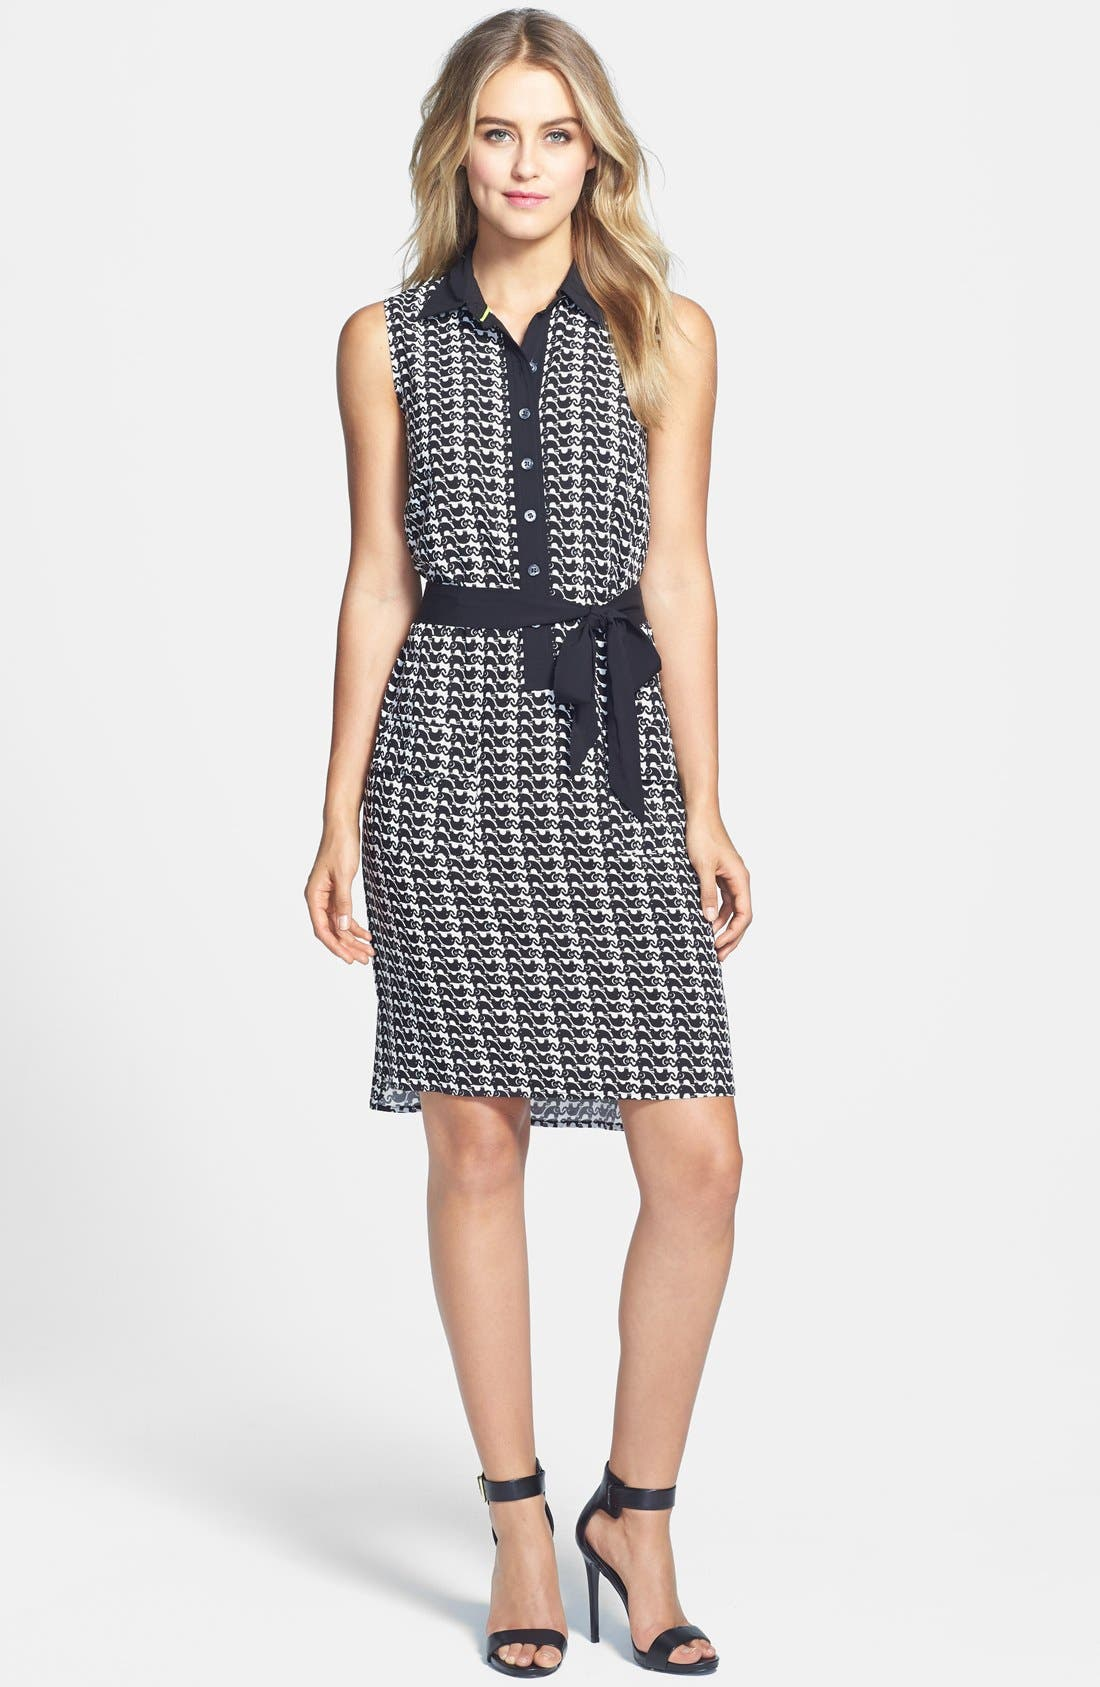 Main Image - Two by Vince Camuto Elephant Print Sleeveless Woven Dress